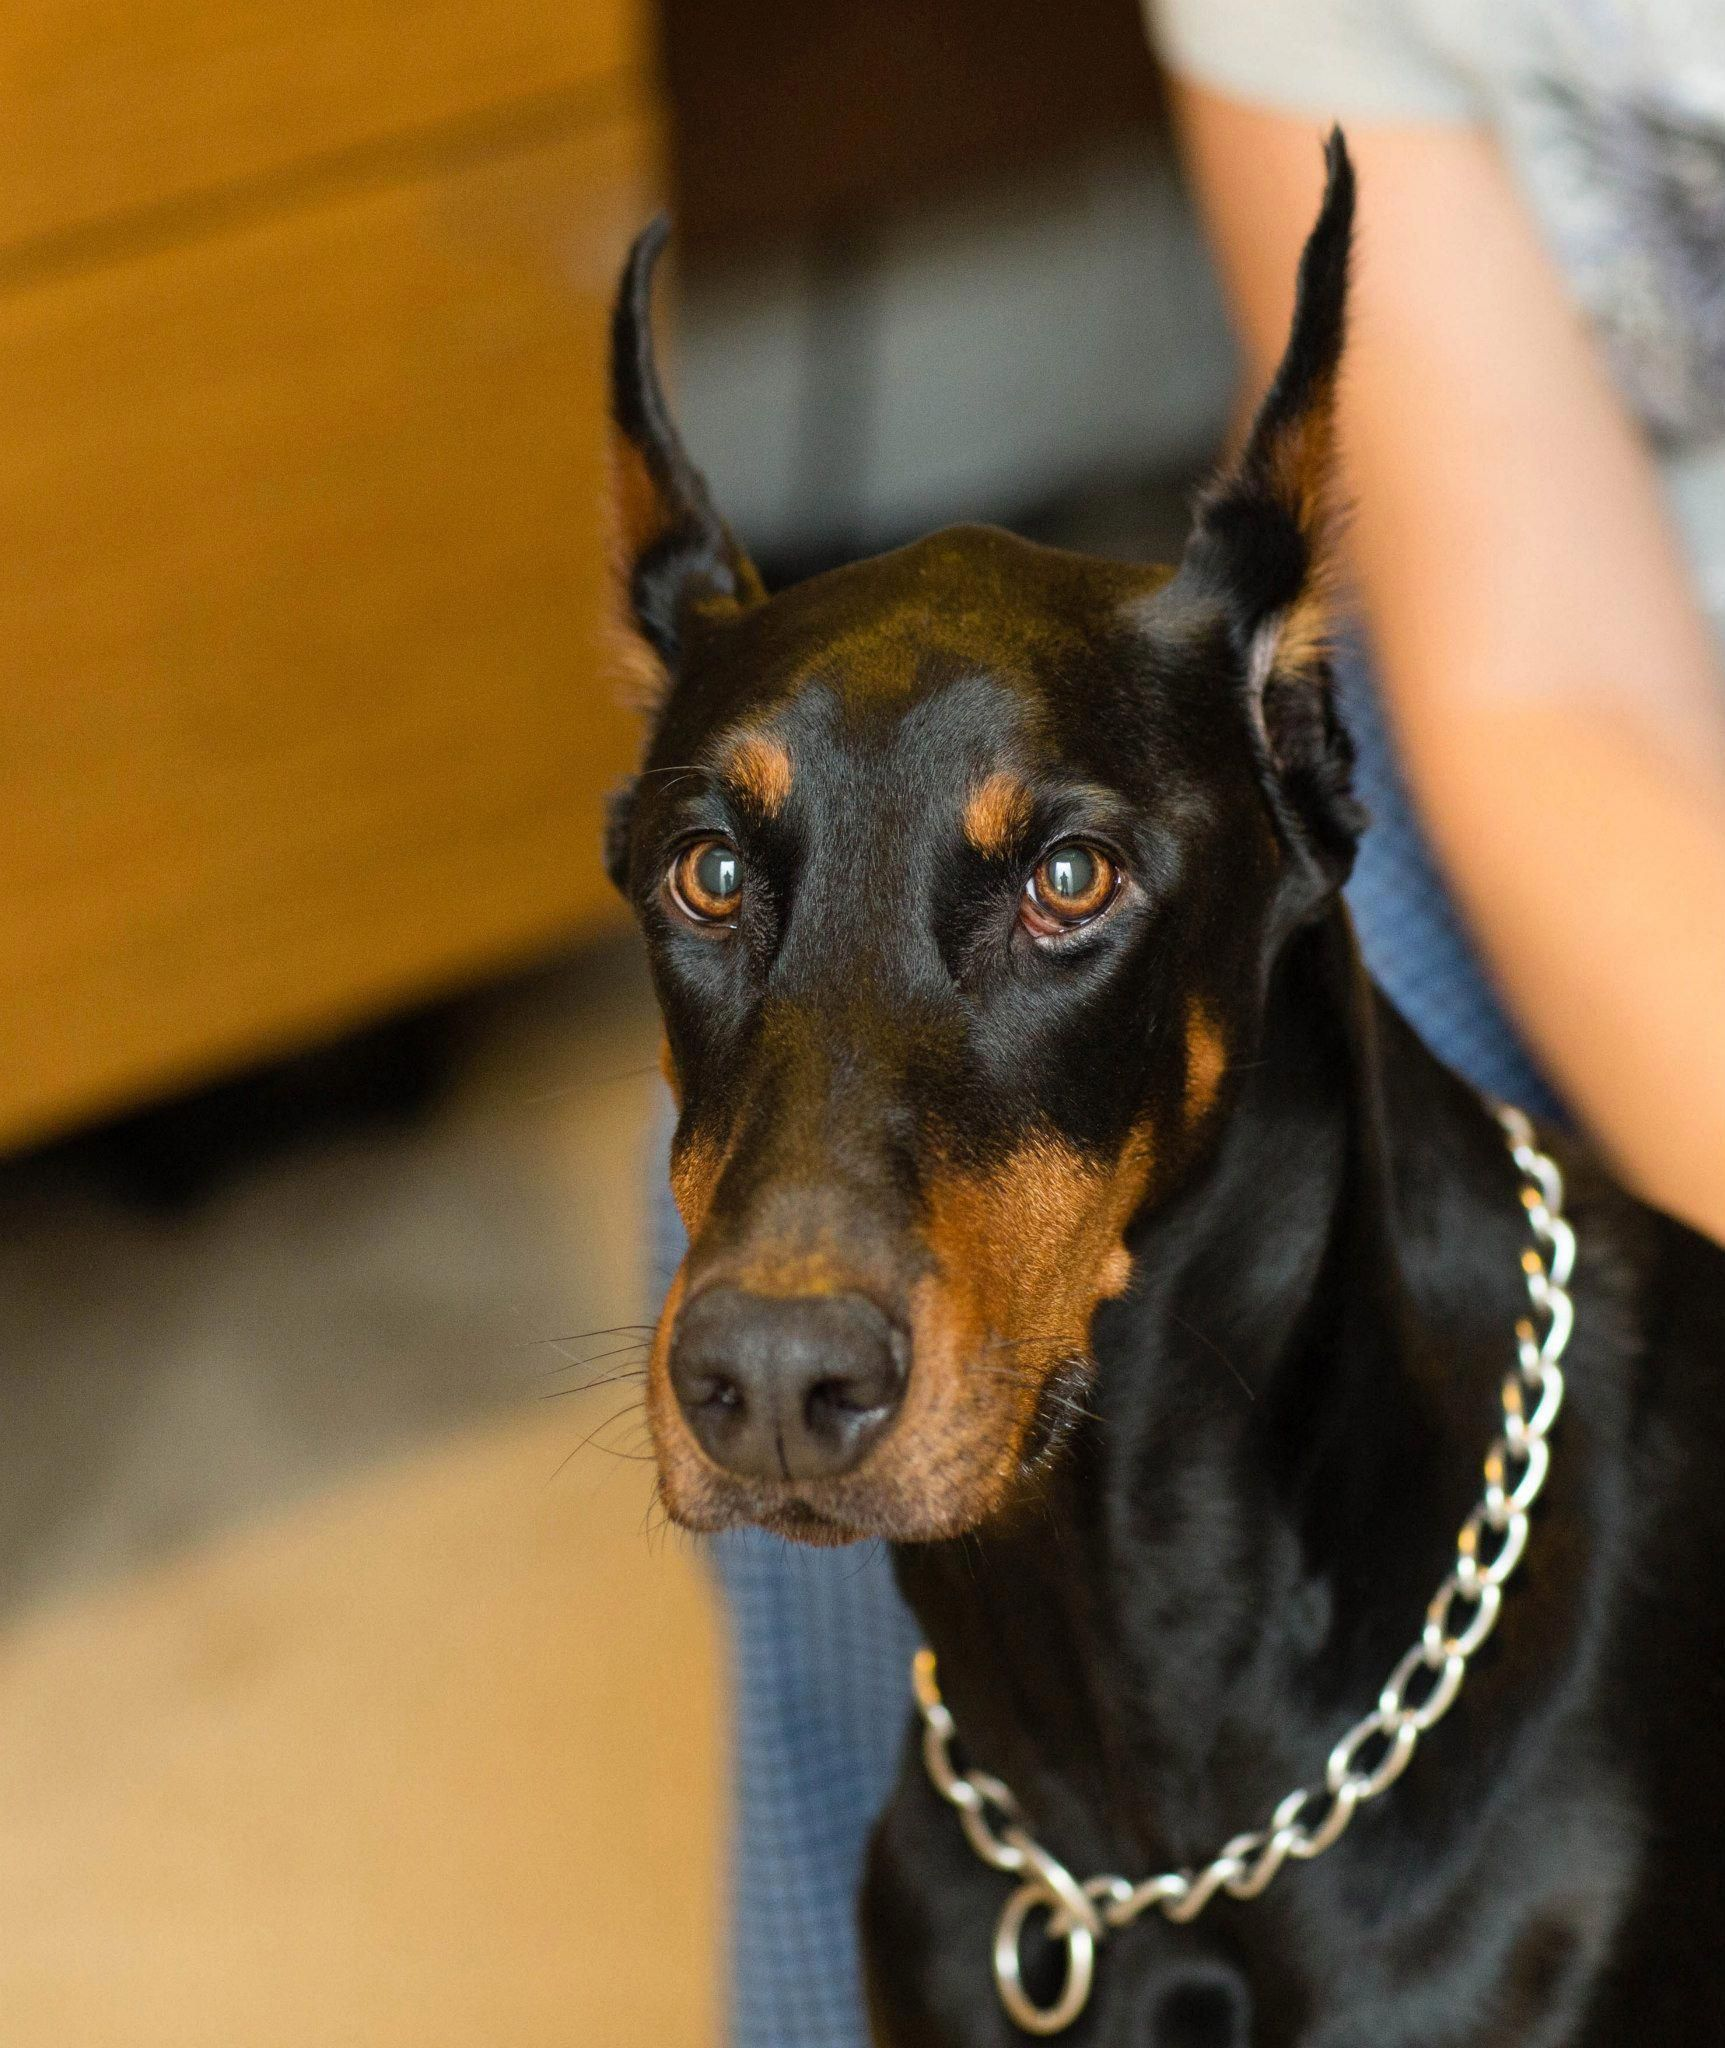 Discover The Dobermans Pup Grooming Dobermangang Dobermanoftheday Dobermanpinschertraining Doberman Pinscher Dog Dobermann Pinscher Doberman Pinscher Puppy